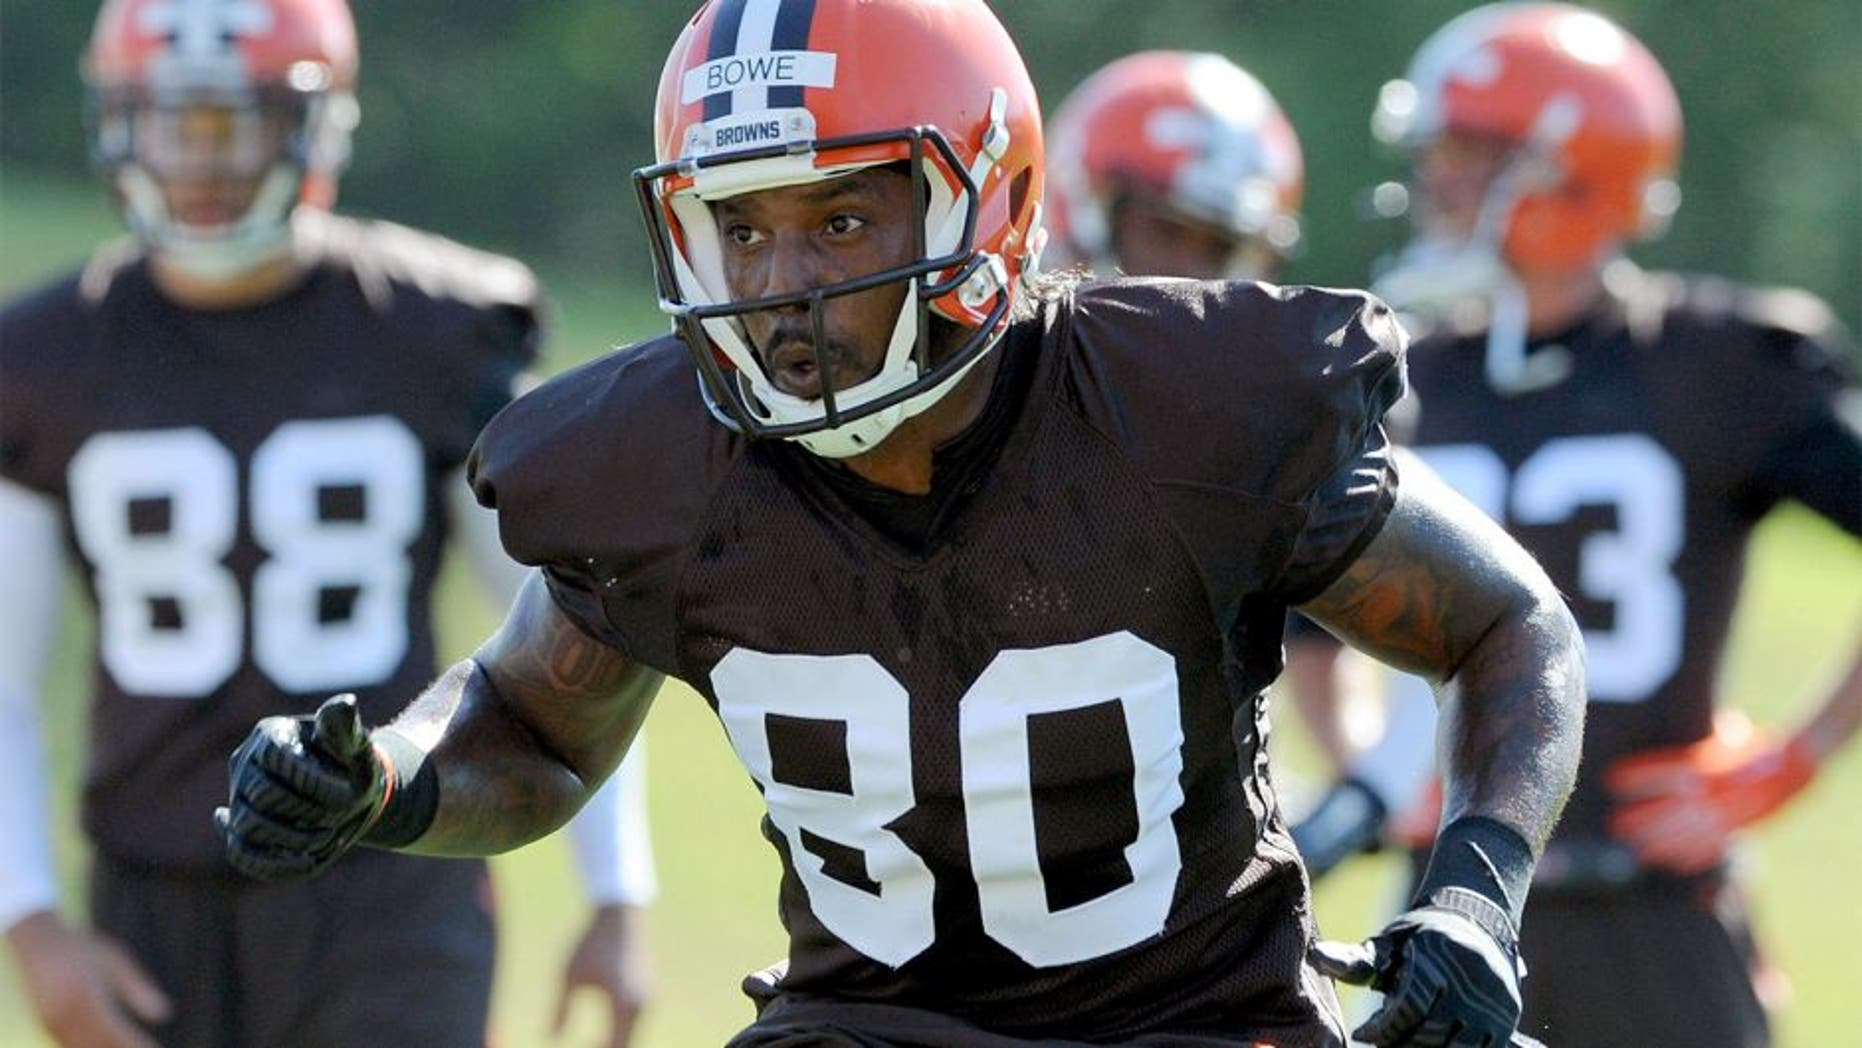 Jul 30, 2015; Berea, OH, USA; Cleveland Browns wide receiver Dwayne Bowe (80) works out during training camp at the Cleveland Browns practice facility. Mandatory Credit: Ken Blaze-USA TODAY Sports